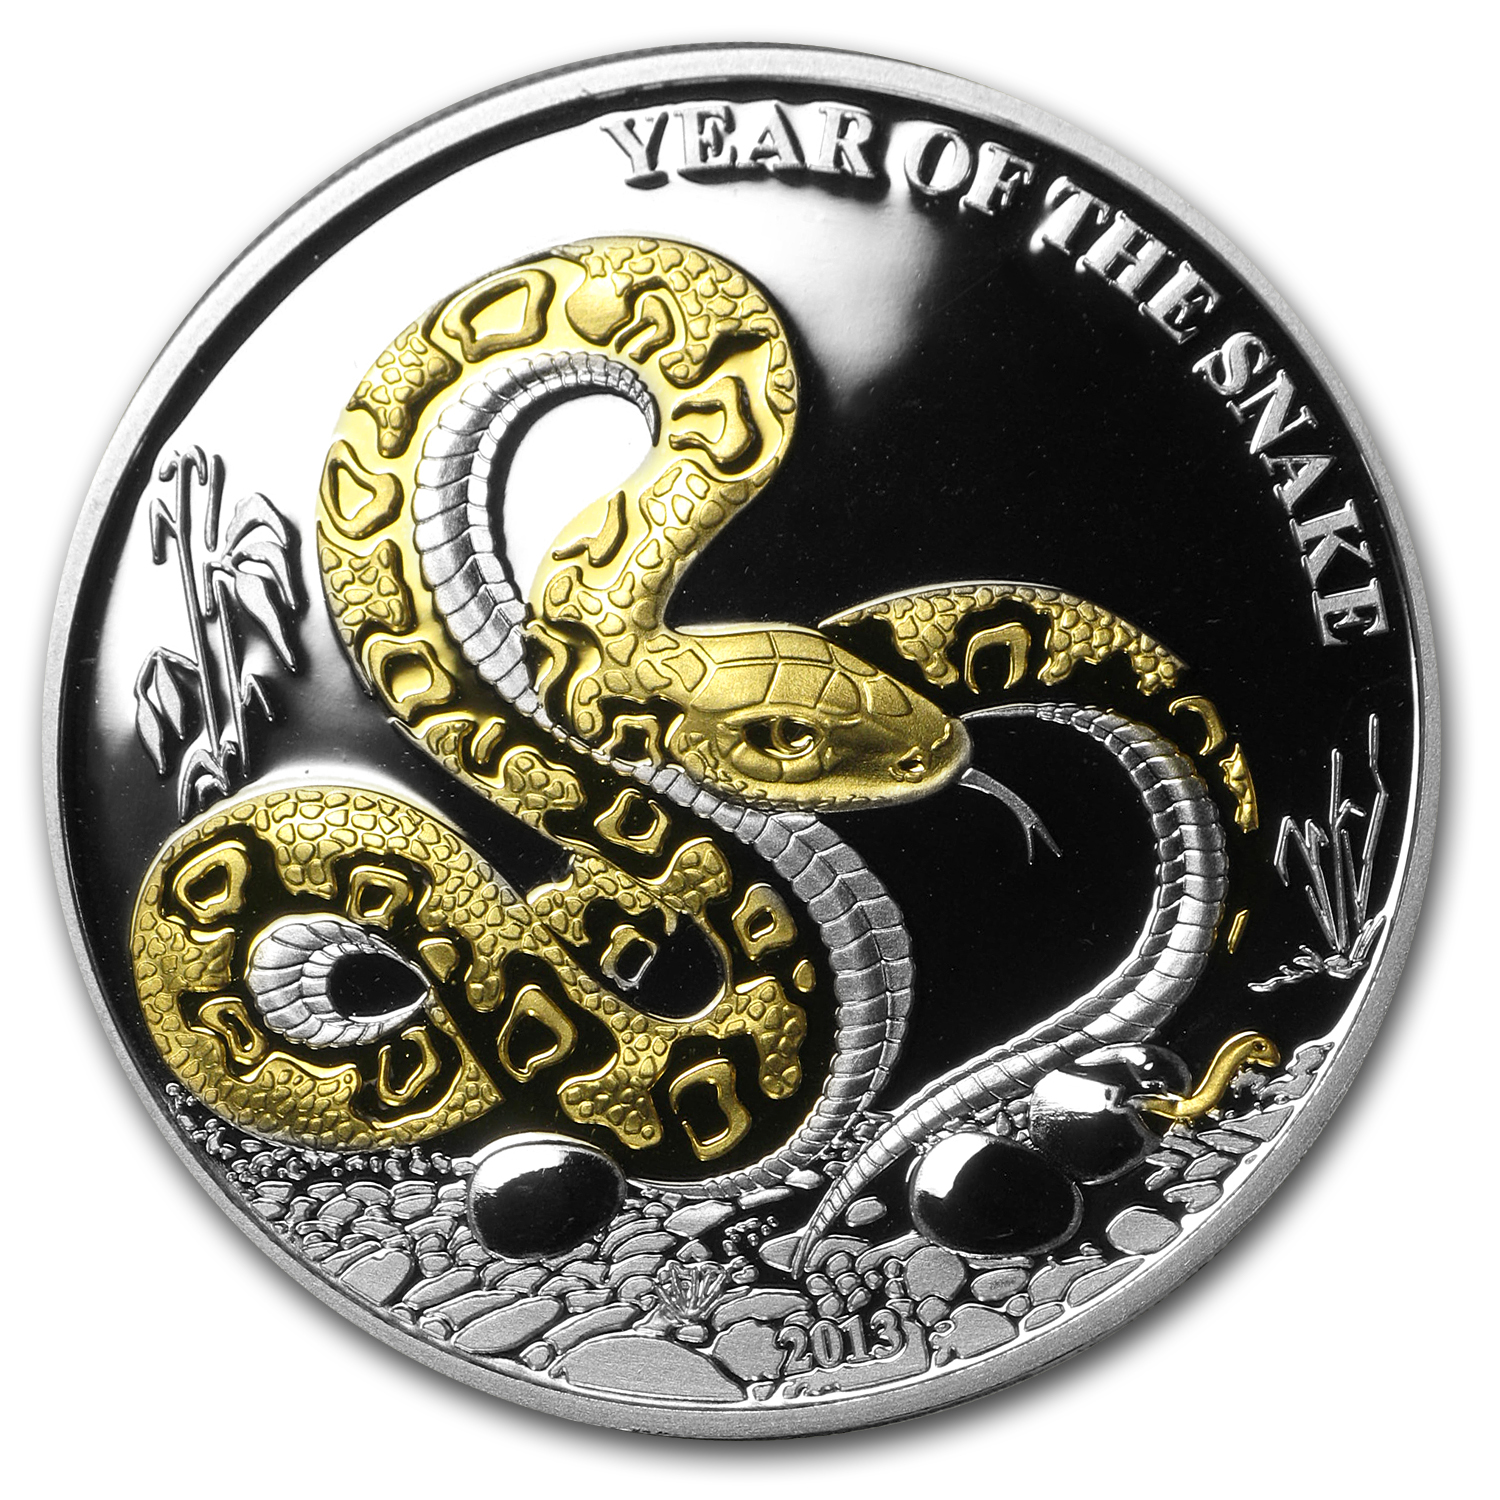 2013 Togo Silver 1 000fr Cfa Year Of The Snake Proof